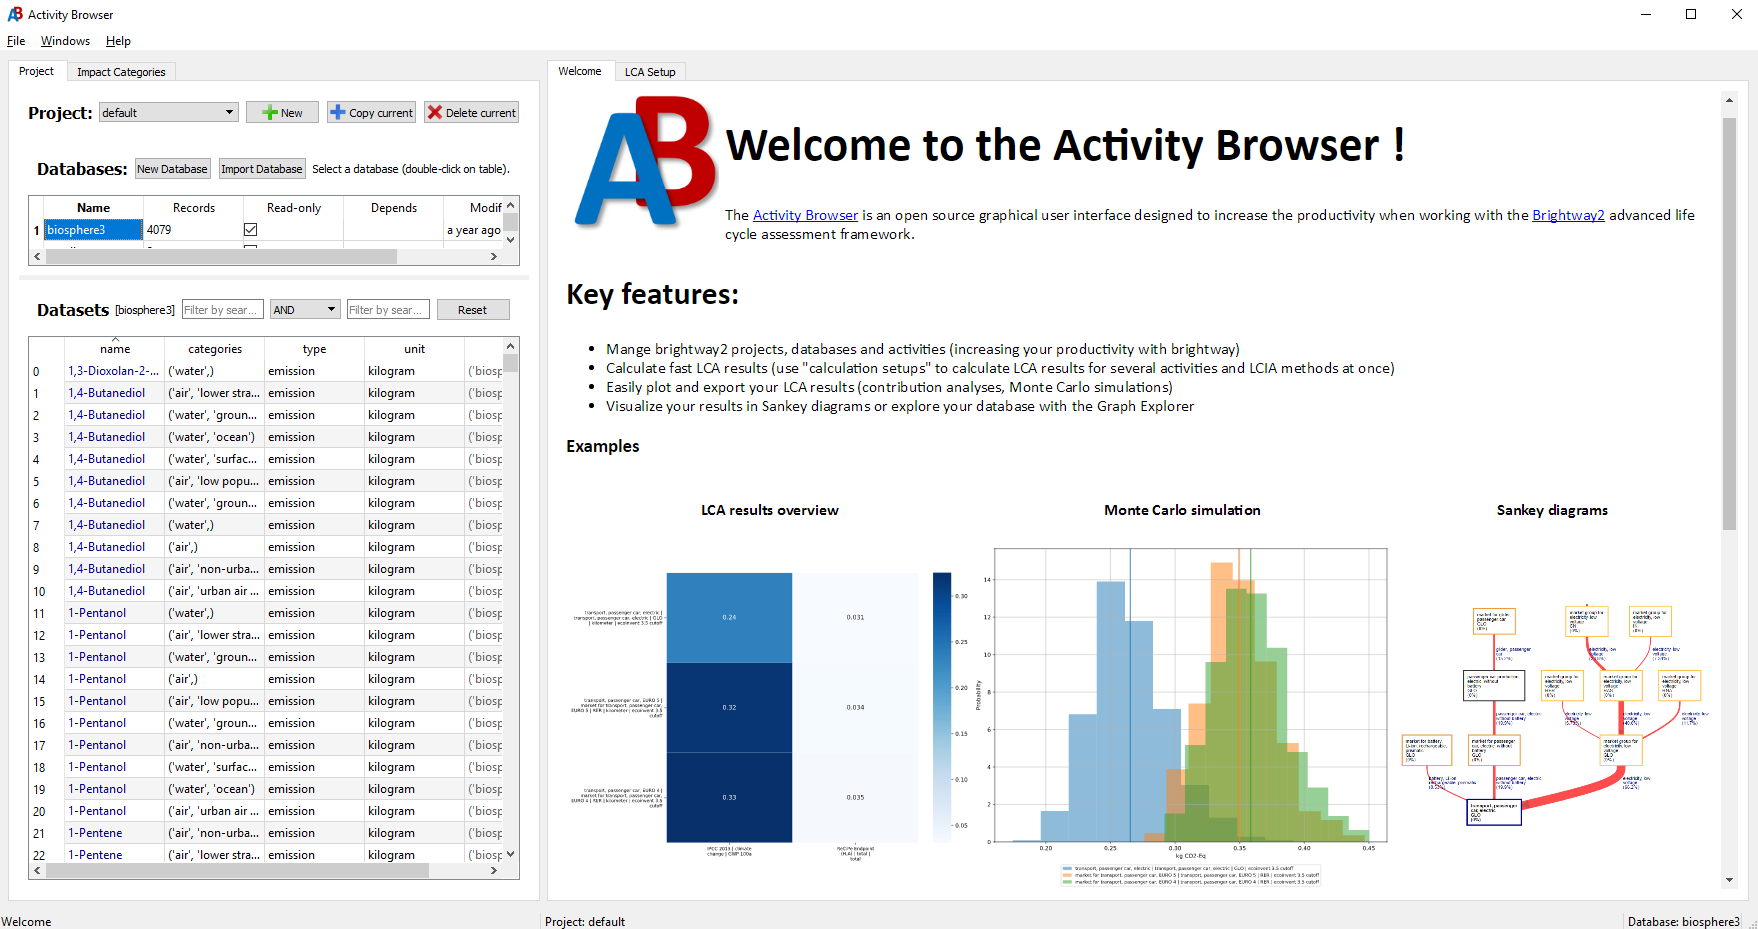 _images/activity-browser-new.png